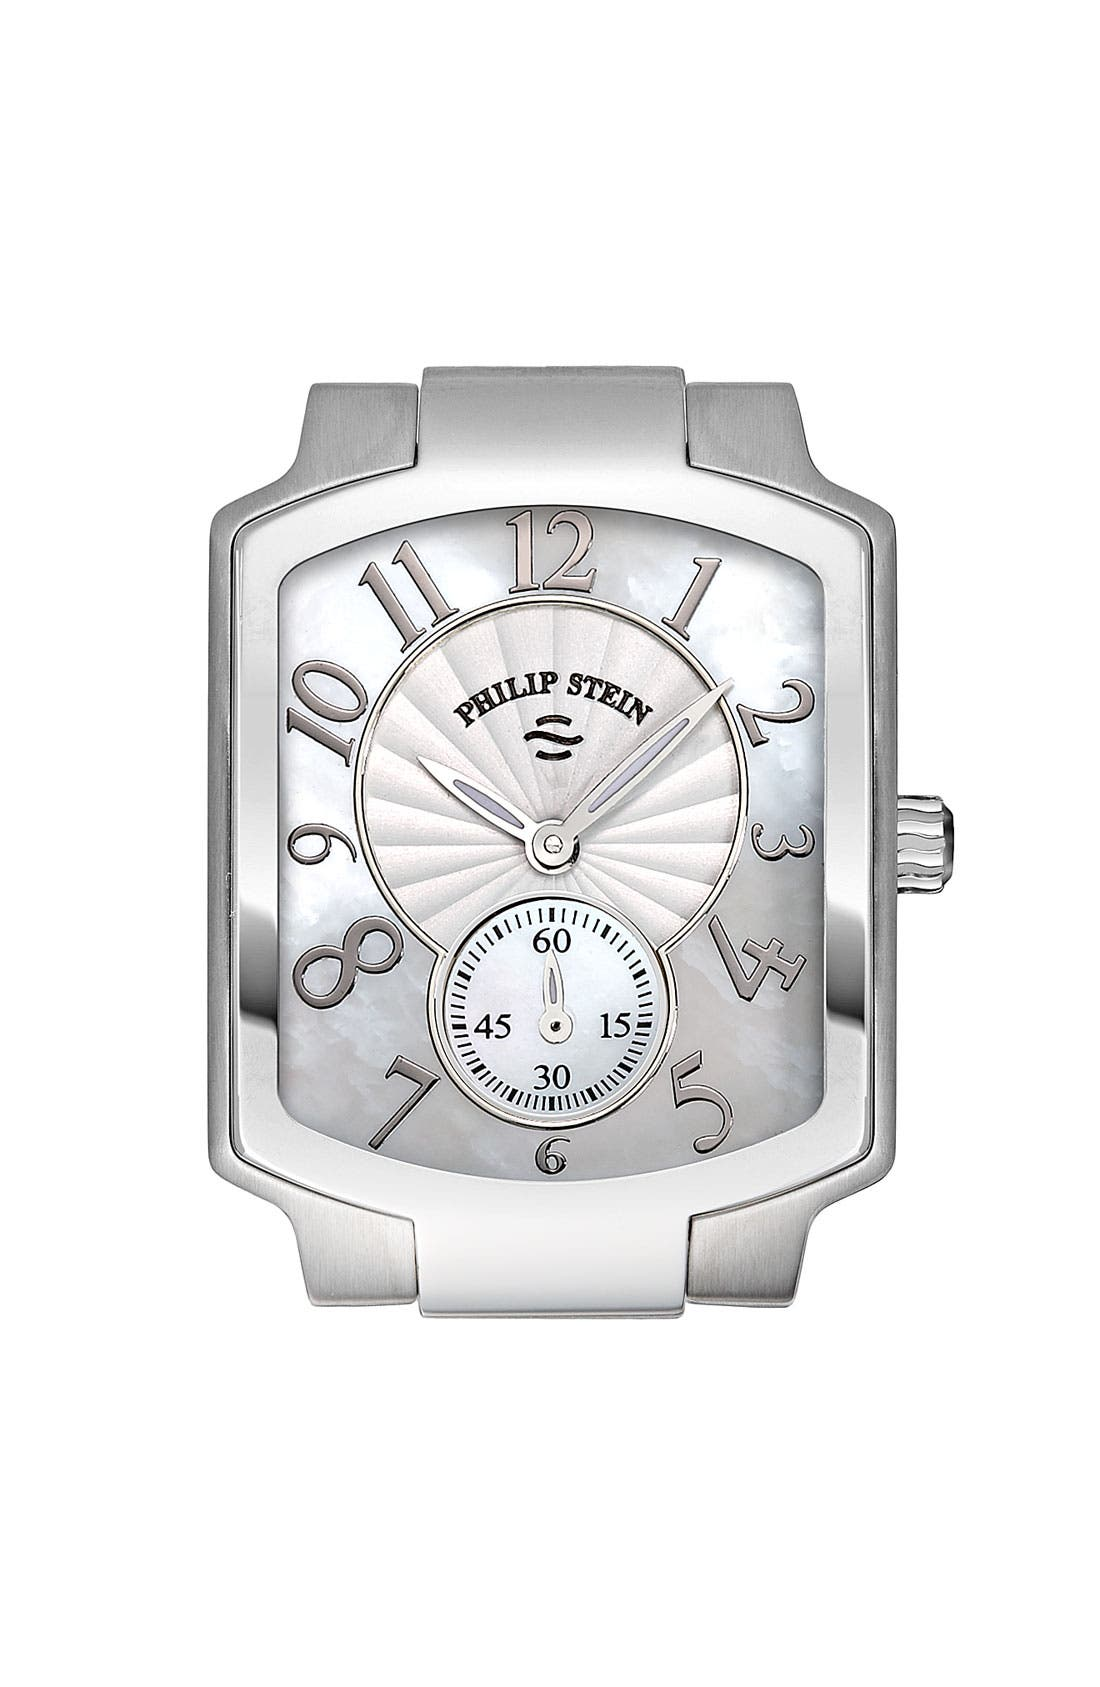 Alternate Image 1 Selected - Philip Stein® Ladies' 'Classic' Small Stainless Steel Watch Case